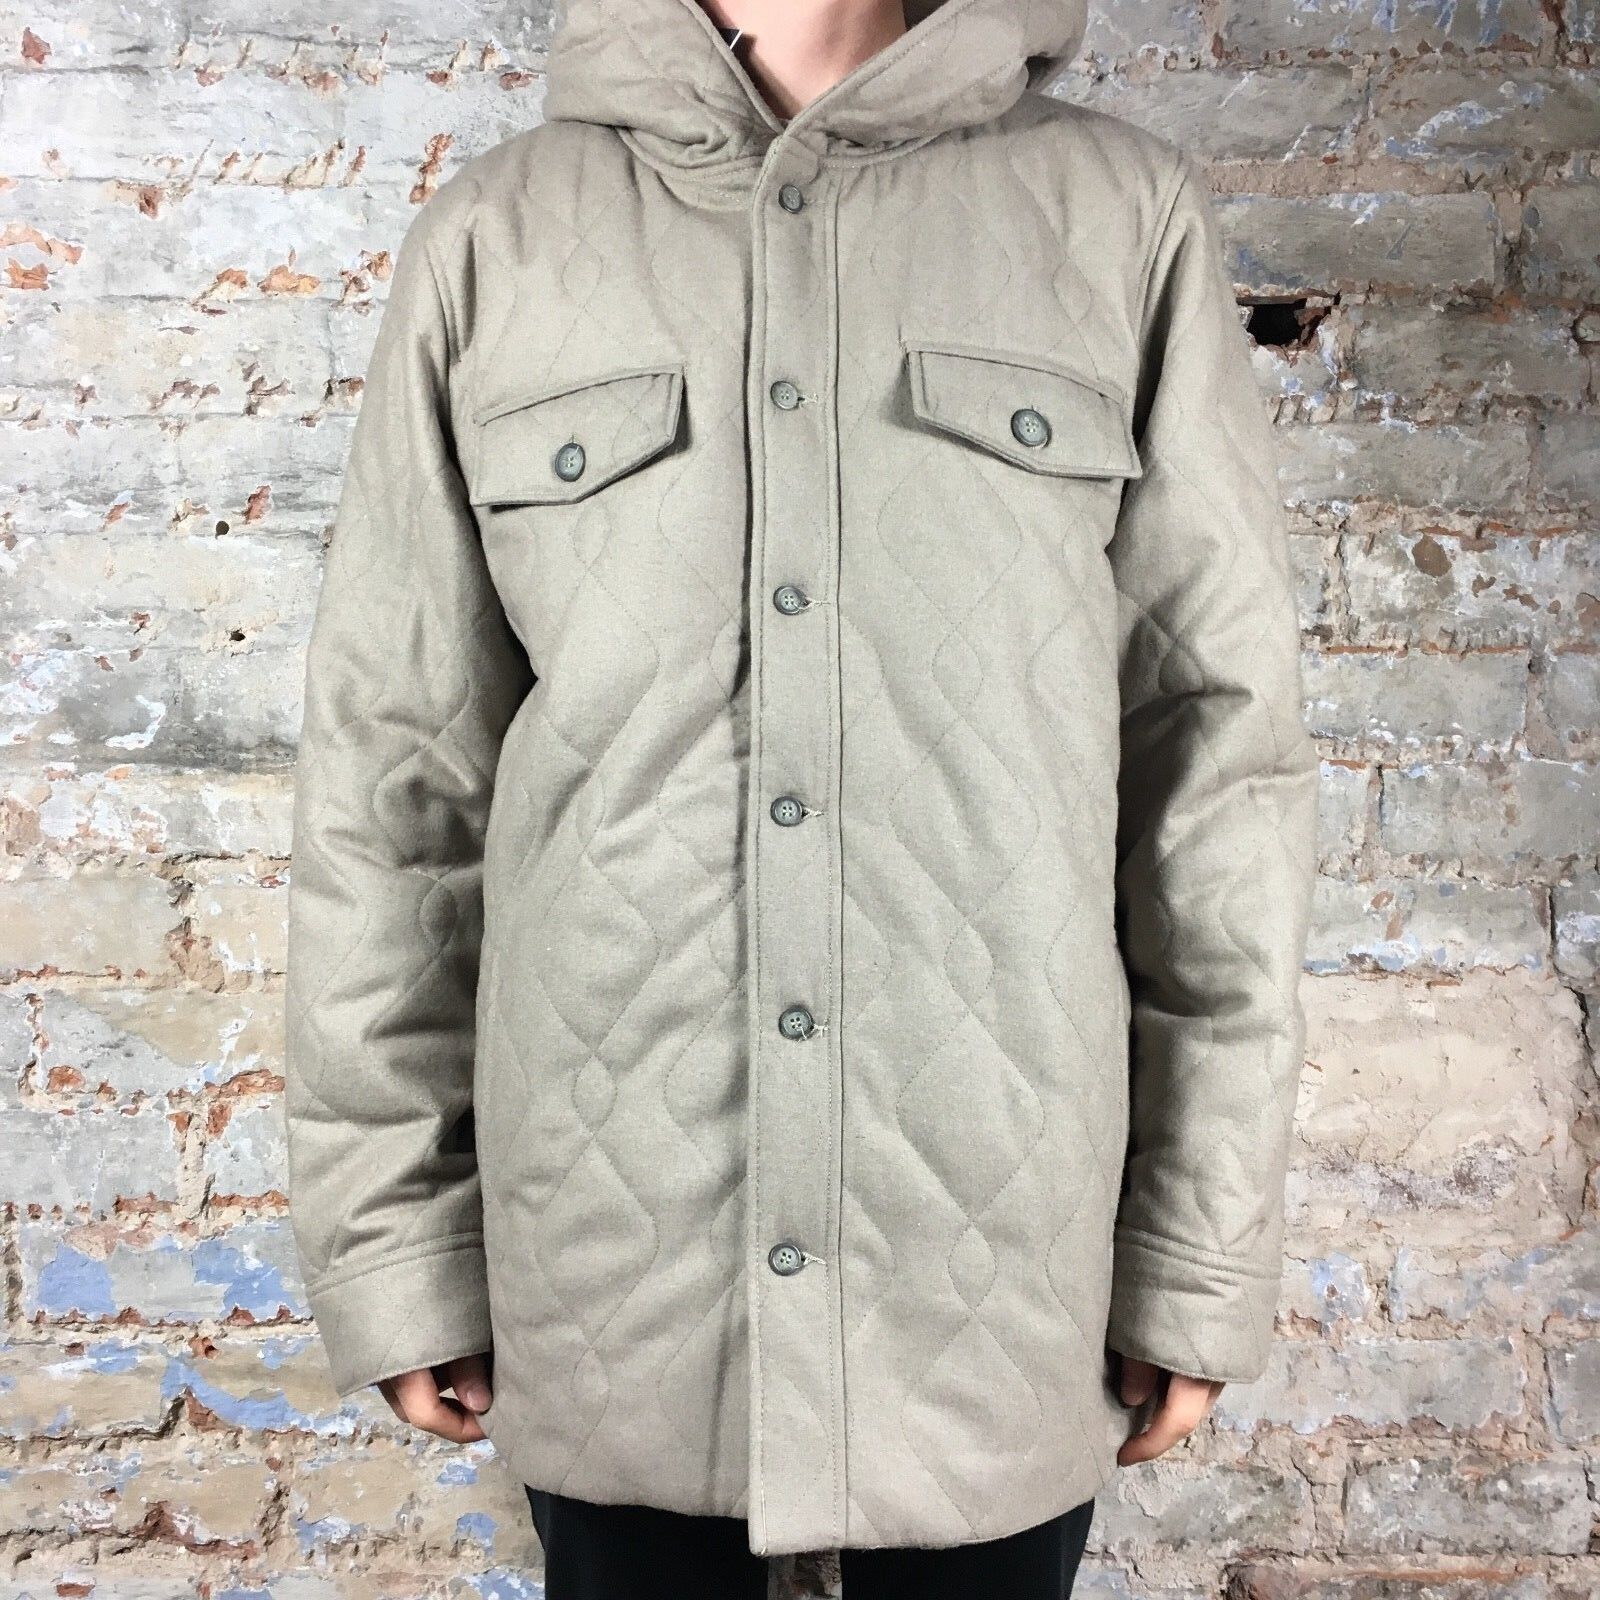 Insight Recoil 2 Hooded Jacket Fleece Brand New in Charcoal Size S,M